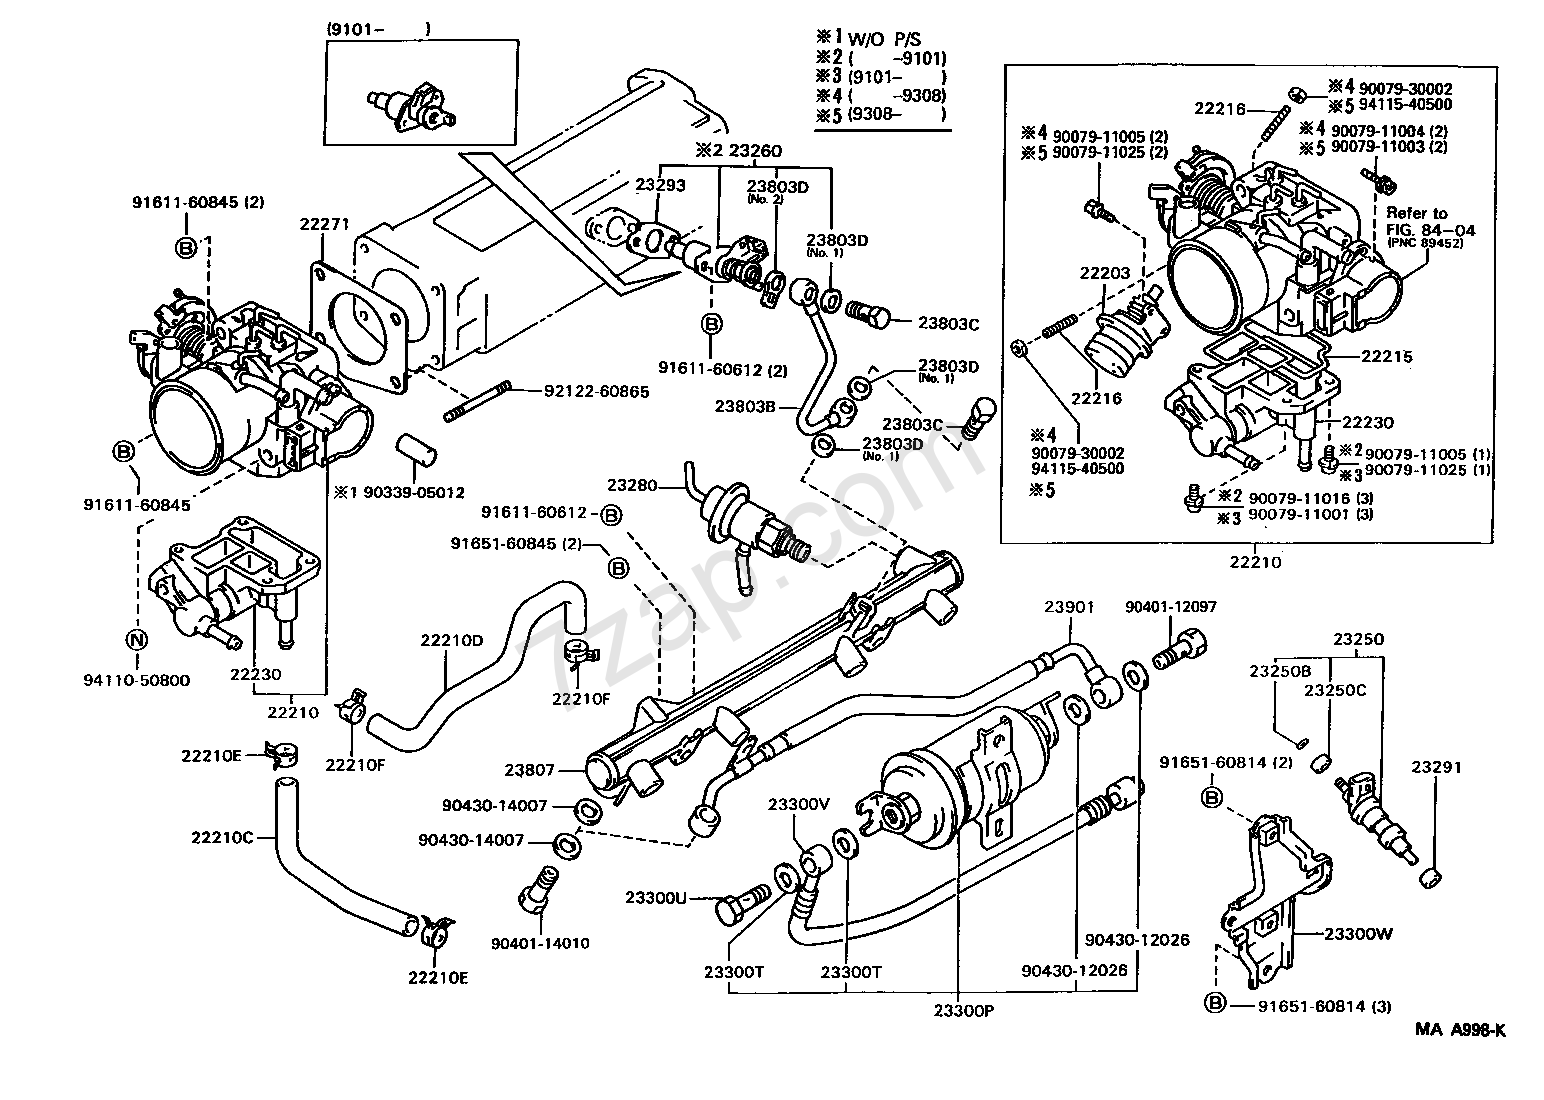 1994 Toyota Pickup 22 Chis Parts Diagram. Toyota. Auto